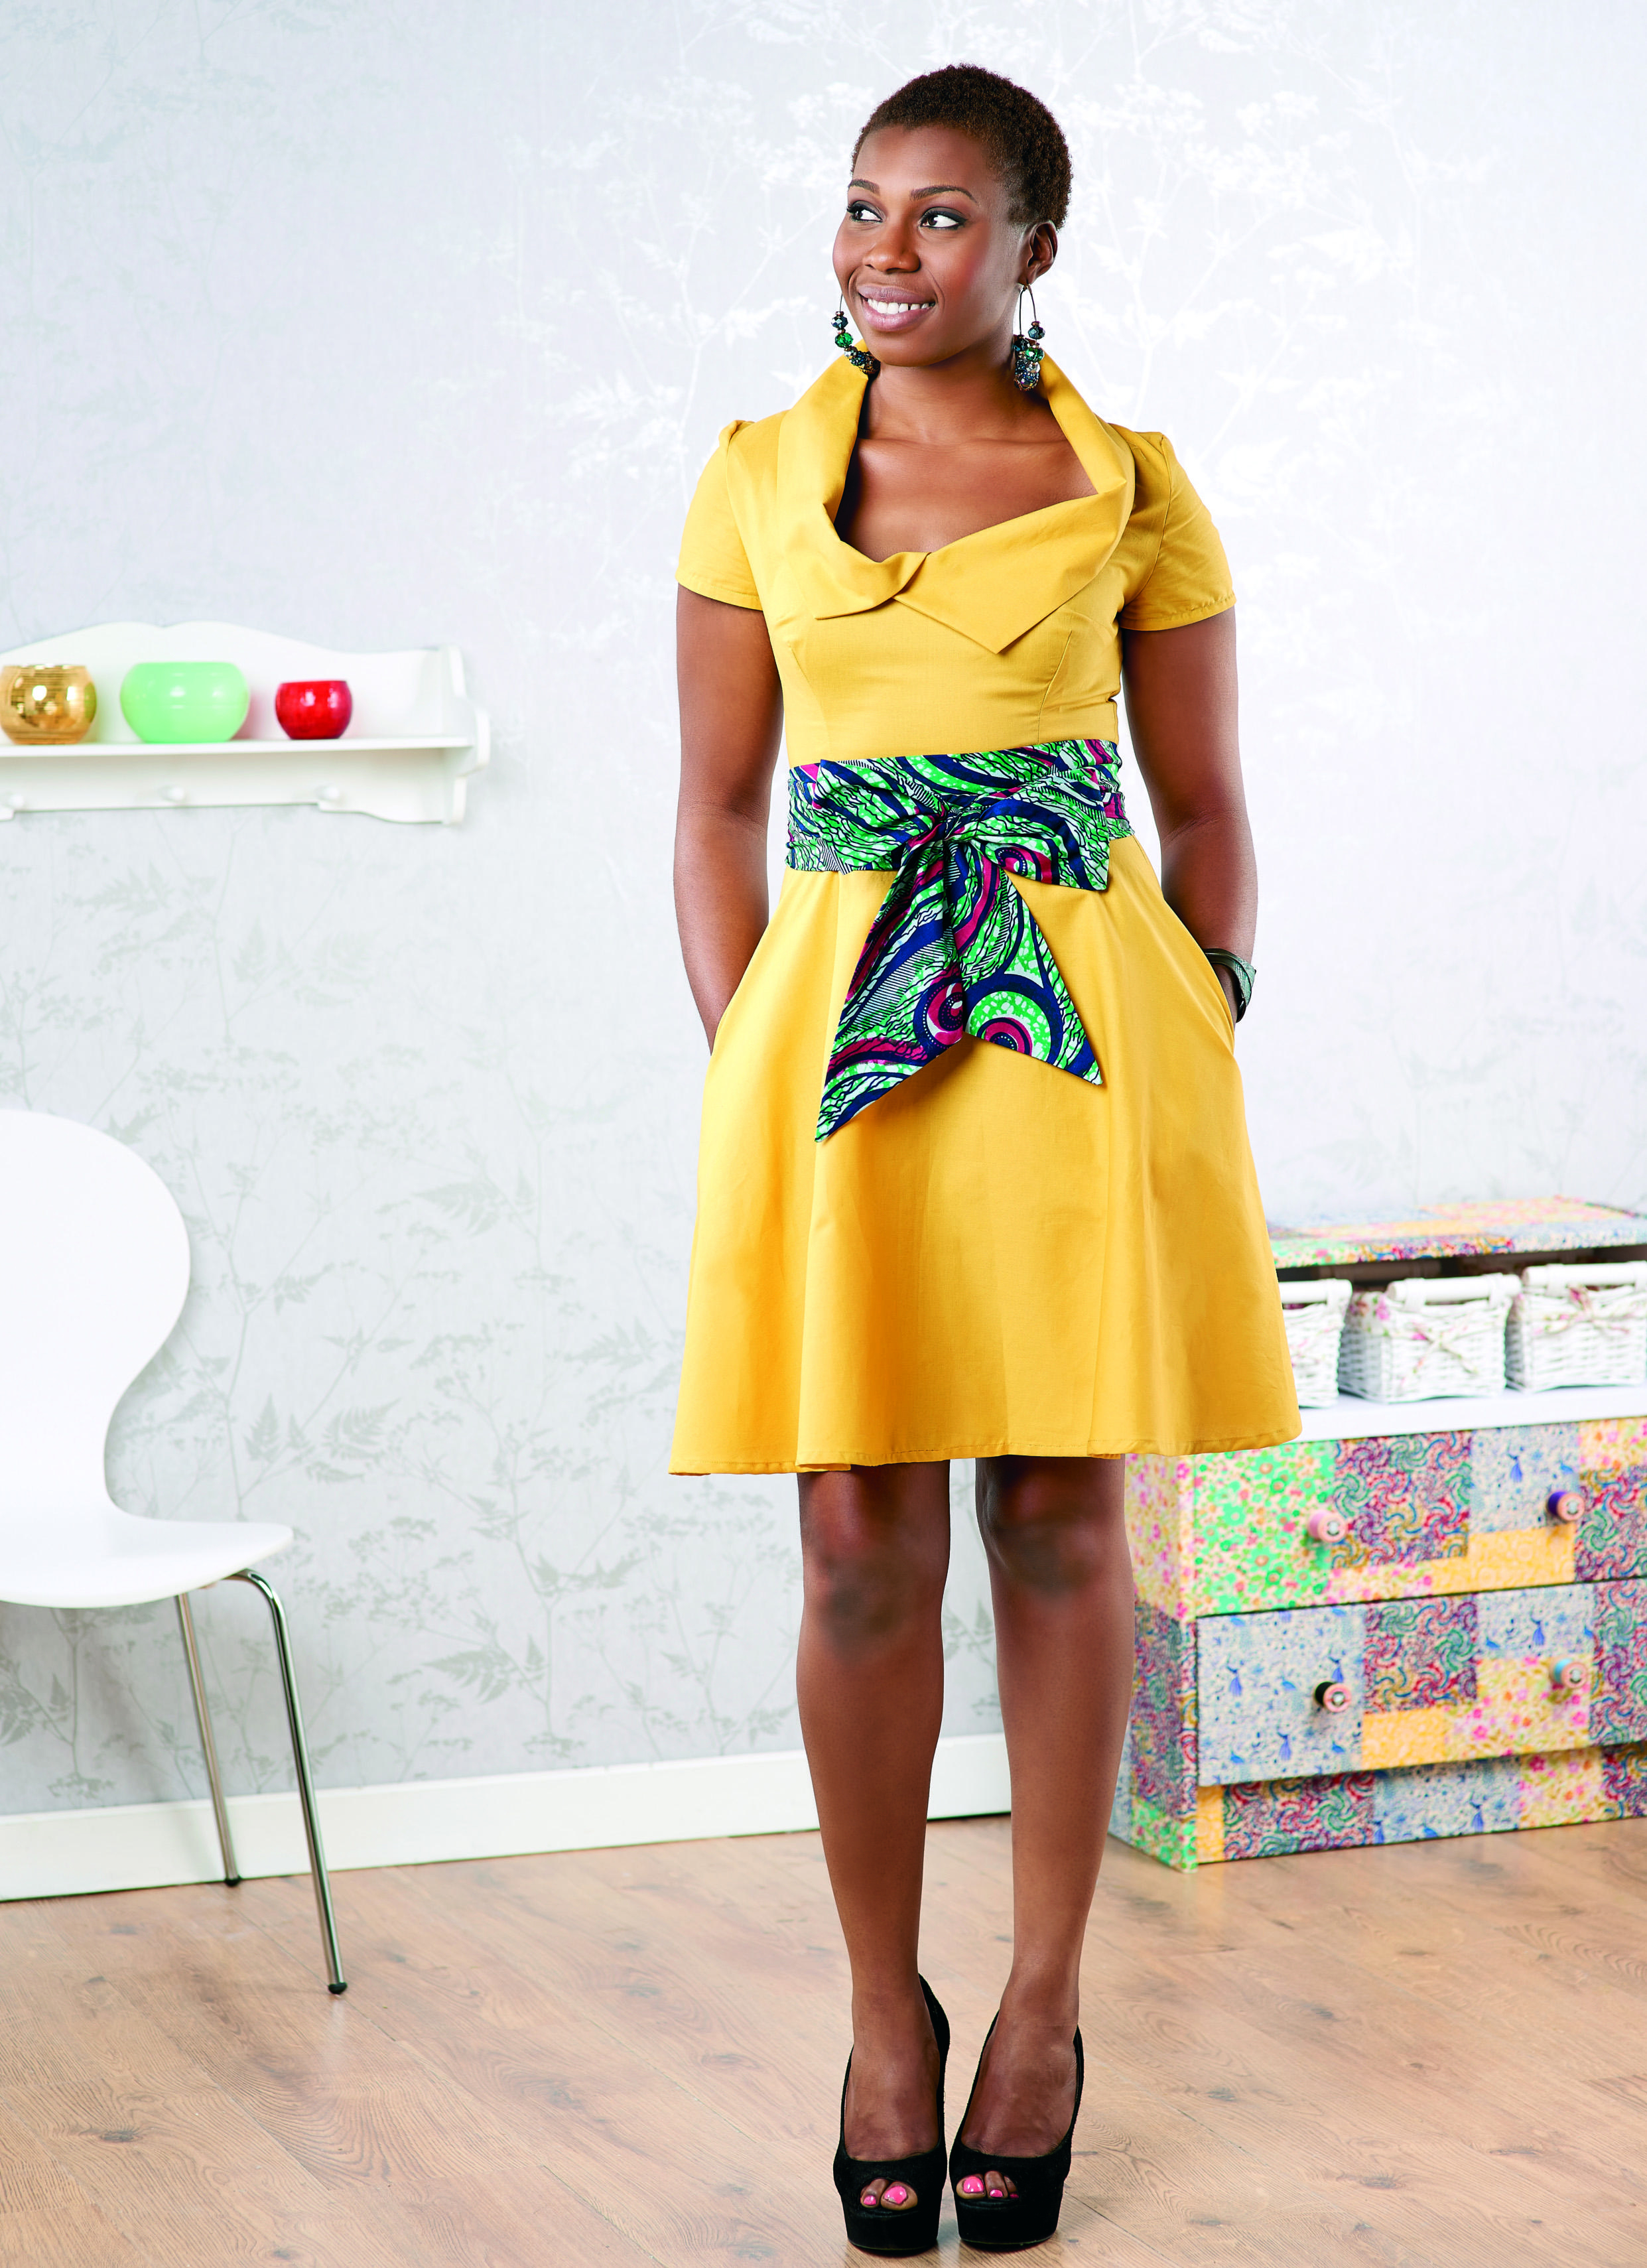 Sewing Upcycled Clothing Easy Diy 25 Quick And Easy Fashion Upcycling Diys Sewing Blog Sew Magazine